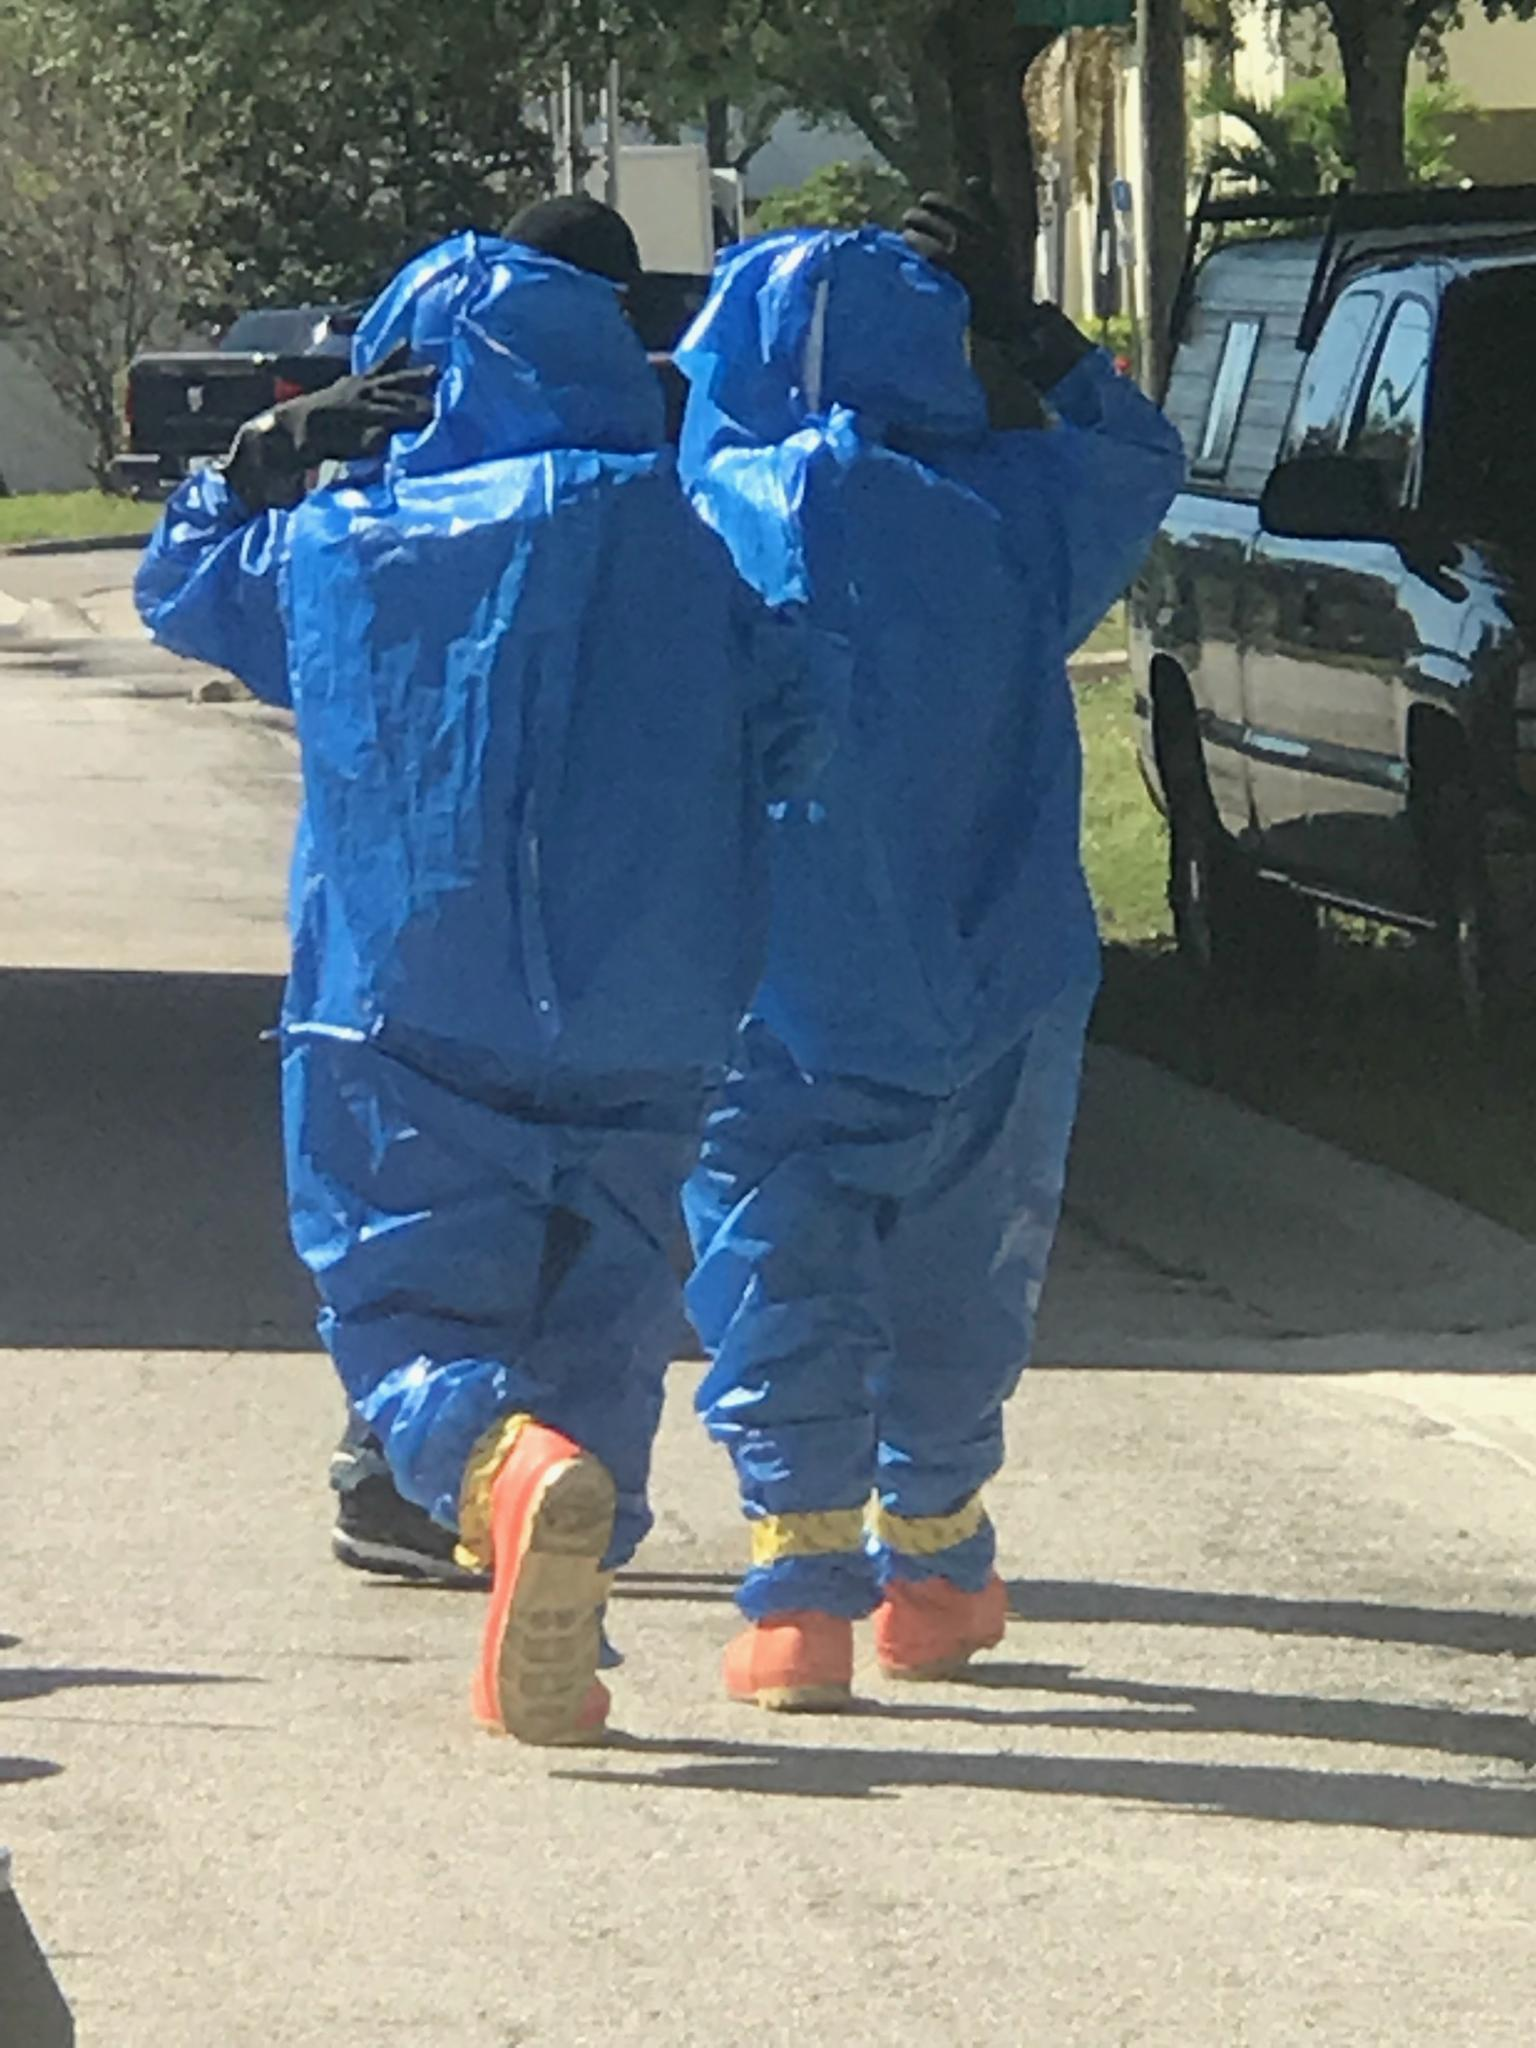 Two workers in haz suits walk down the street